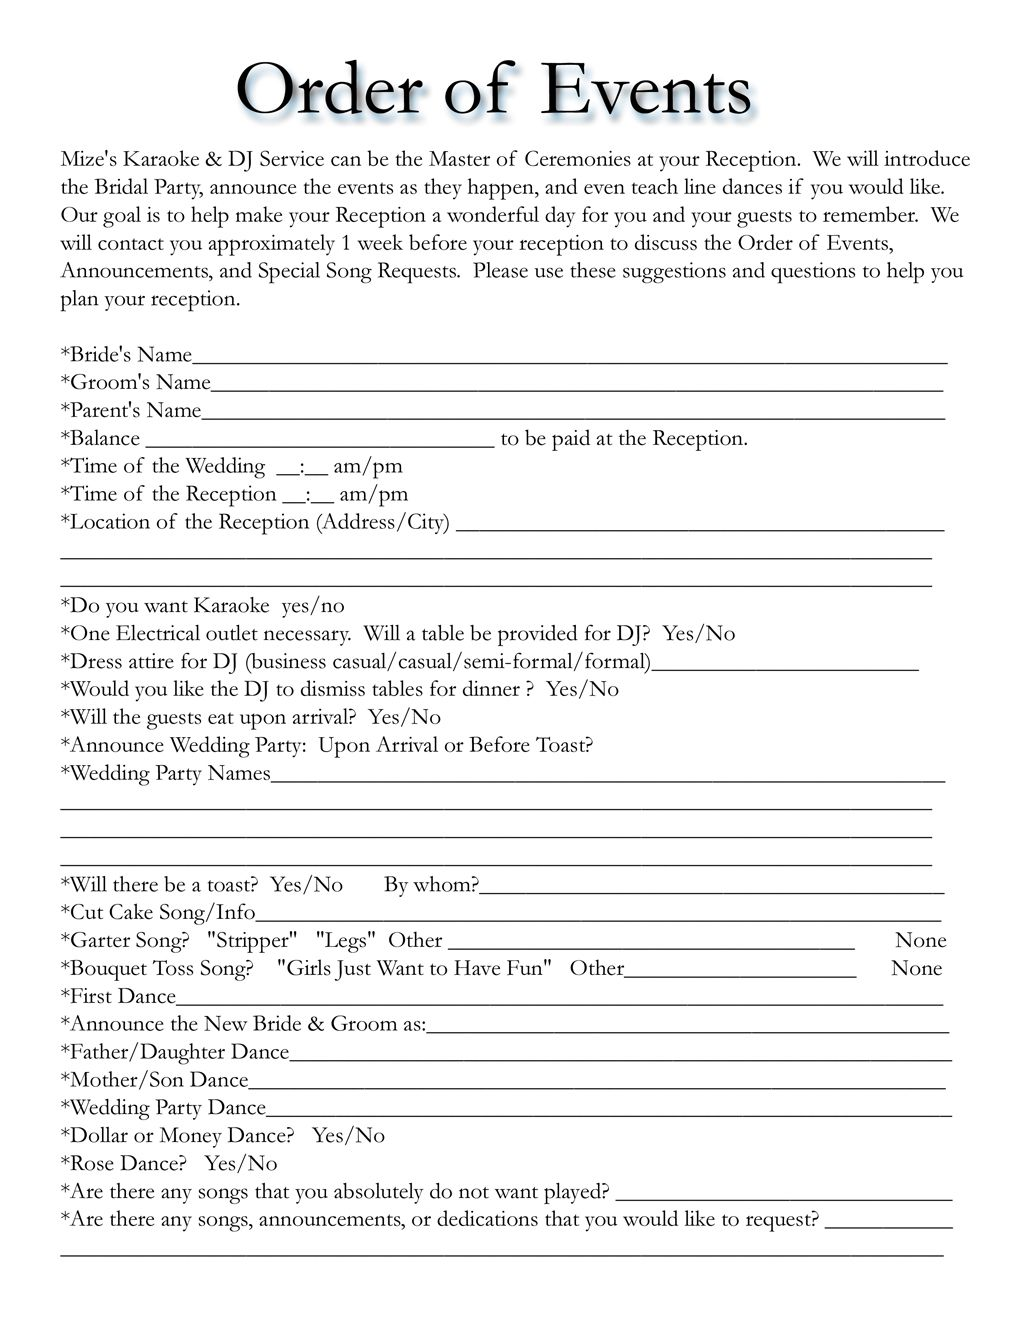 Wedding itinerary templates free wedding template projects to wedding itinerary templates free wedding template maxwellsz